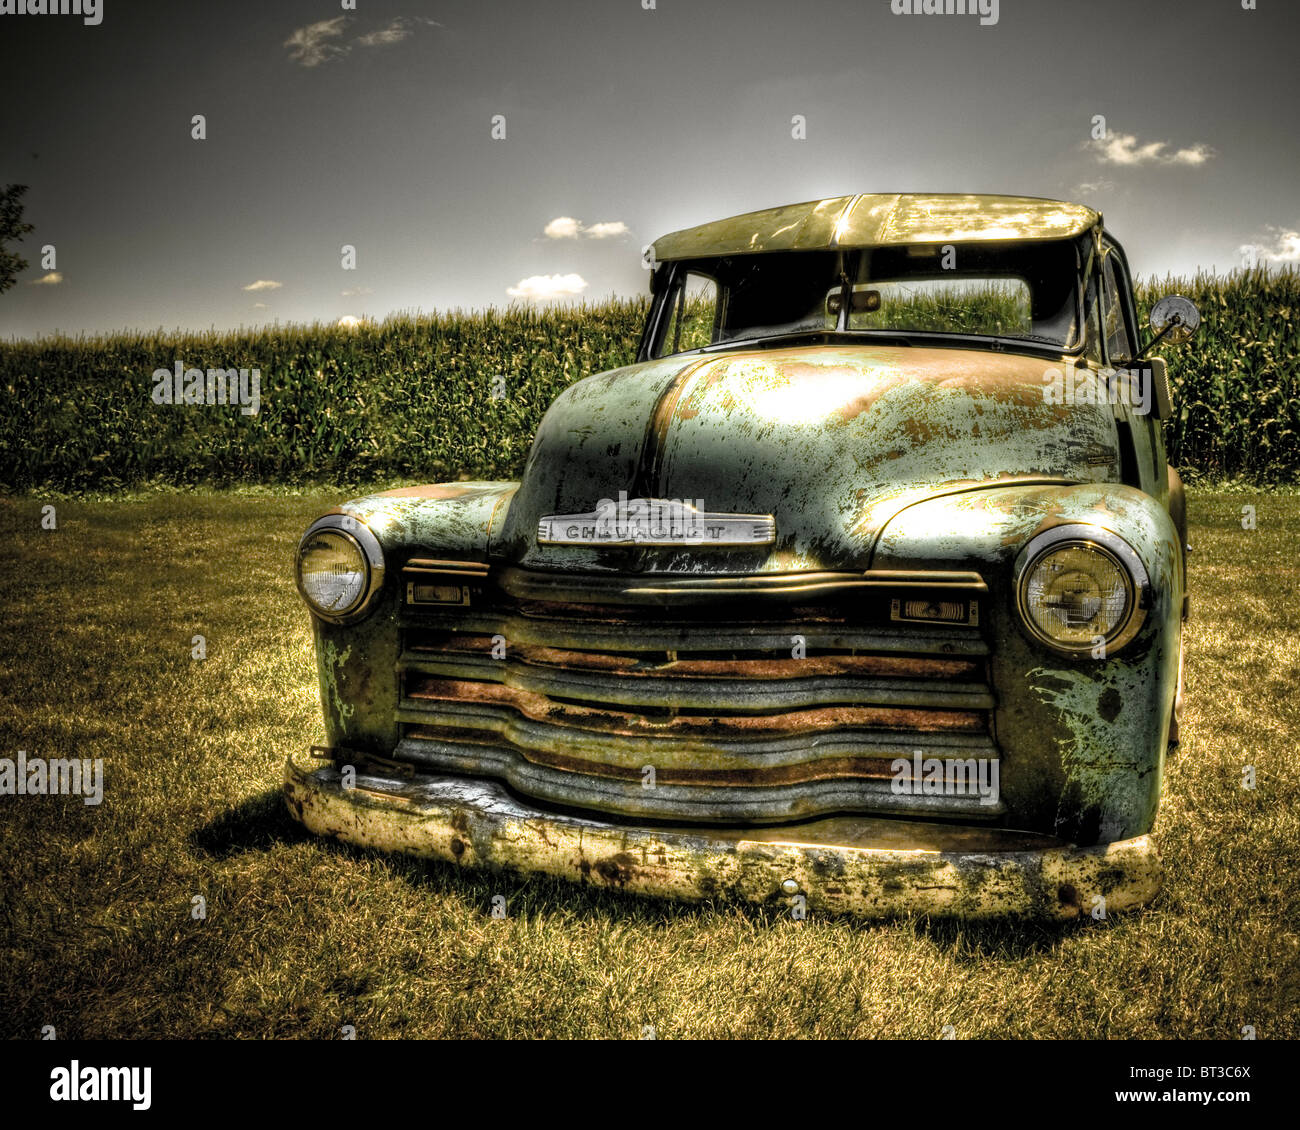 Vintage chevy truck planted in the ground outdoors under hot sun stock image